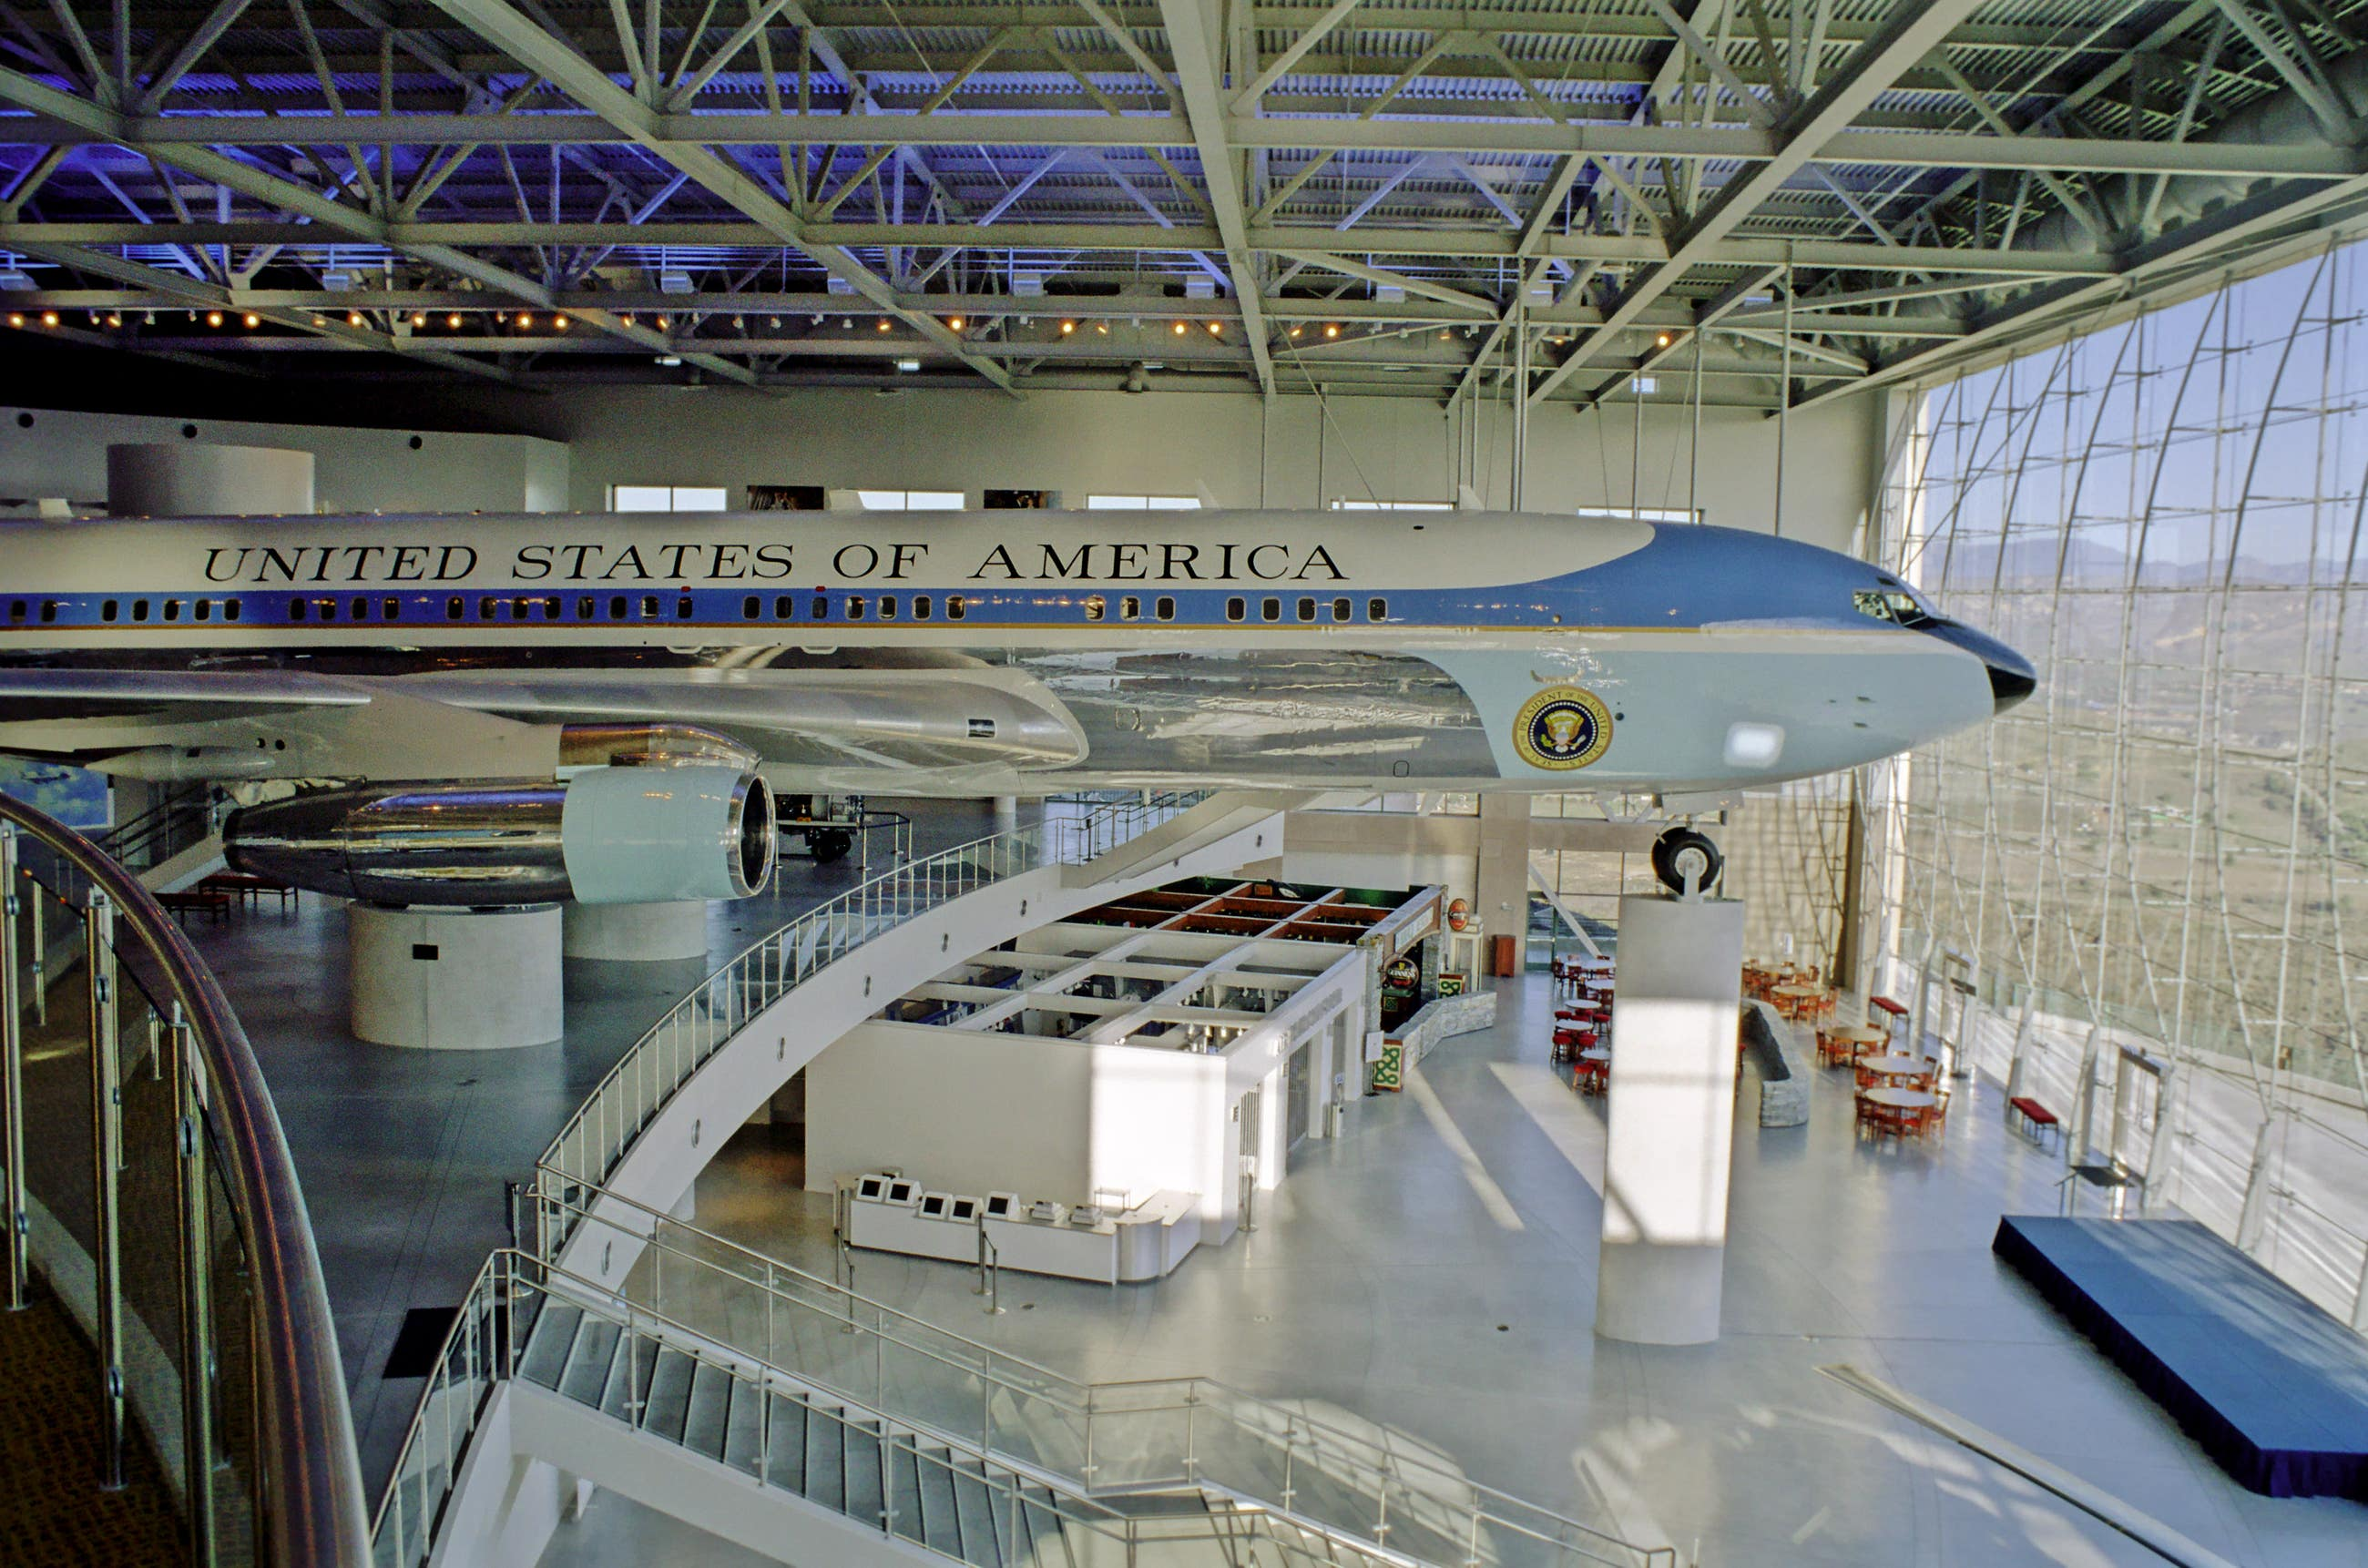 Air Force One Pavilion at the Ronald Reagan Presidential Library